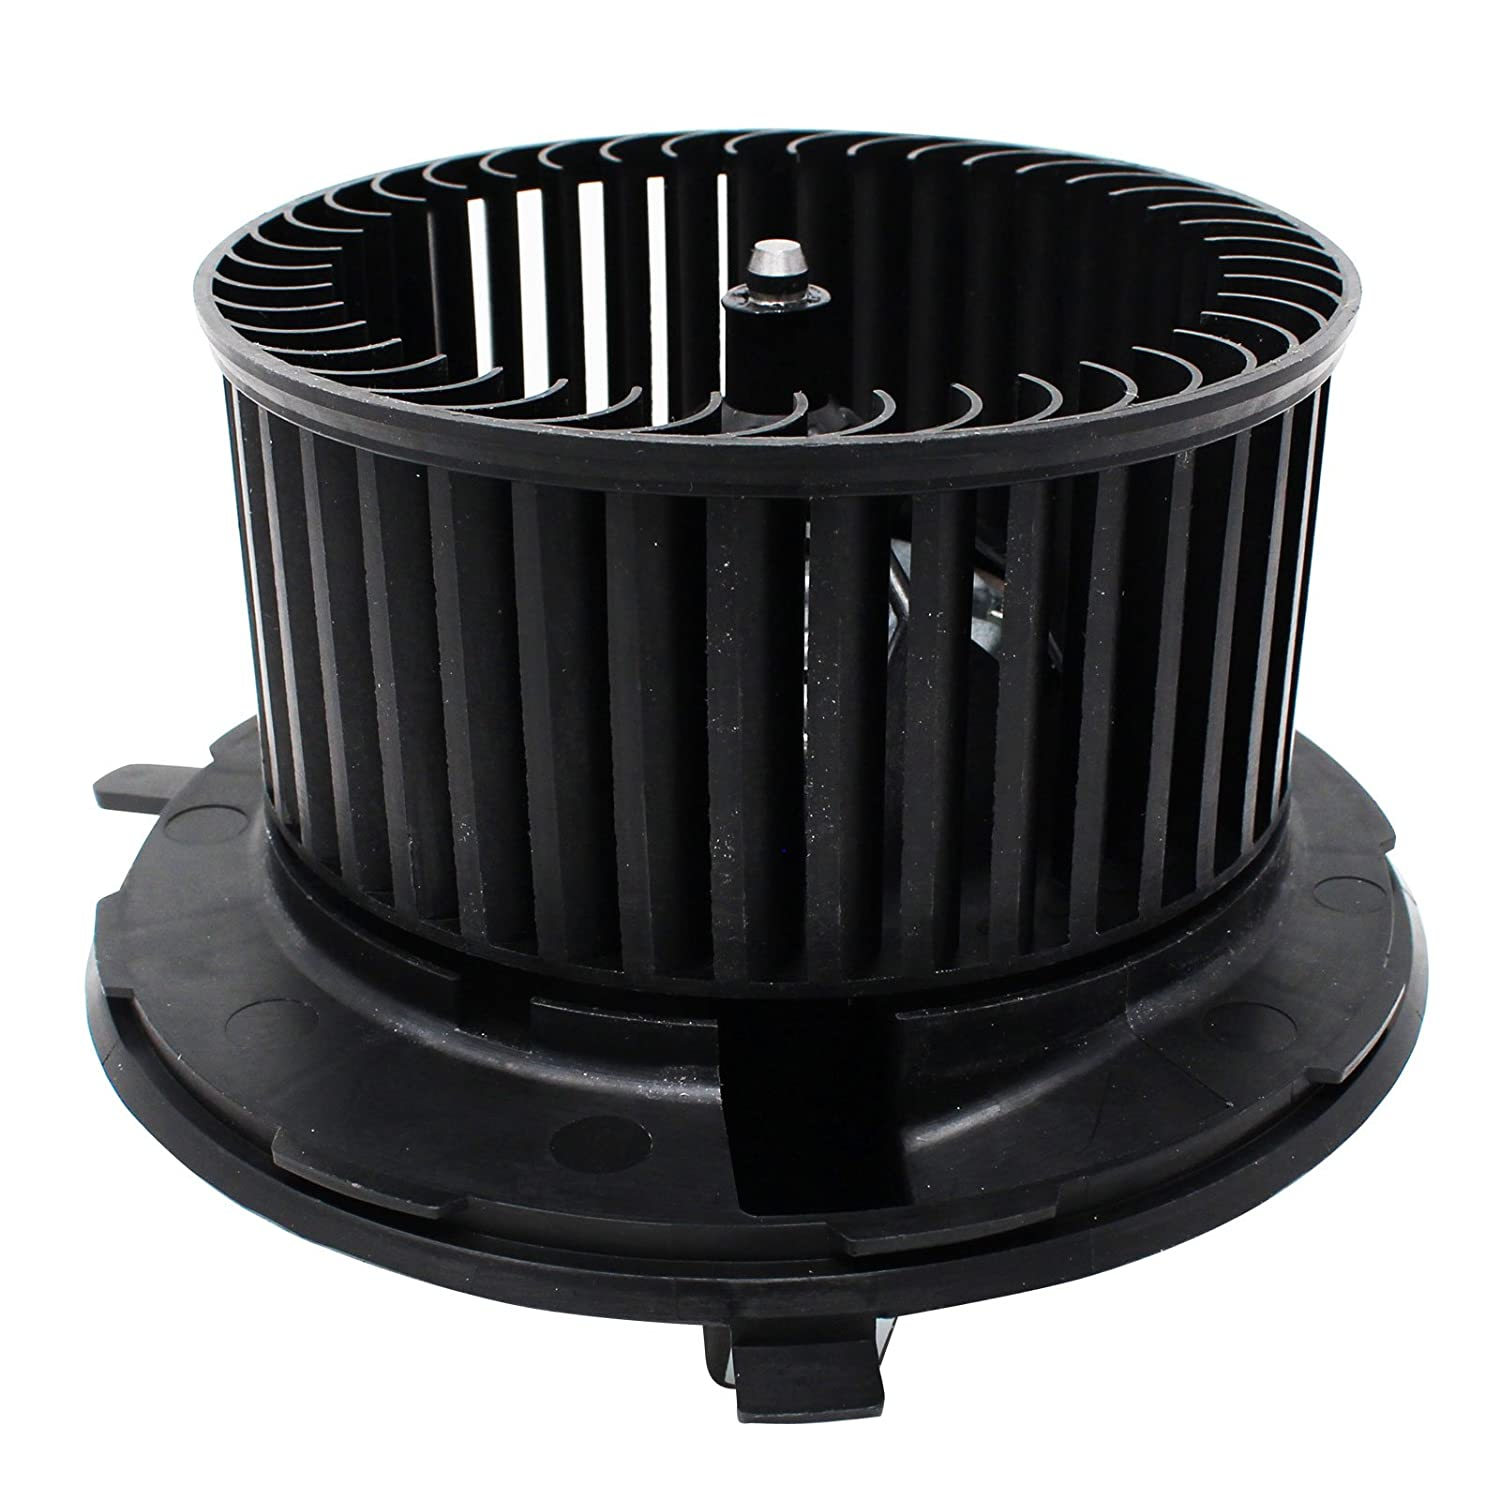 Replacement Blower Assembly for 2006 Volkswagen Jetta 2.5 Sedan 4-Door 2.5L - Compatible 1K1819015 Fan Motor Assembly UpStart Components